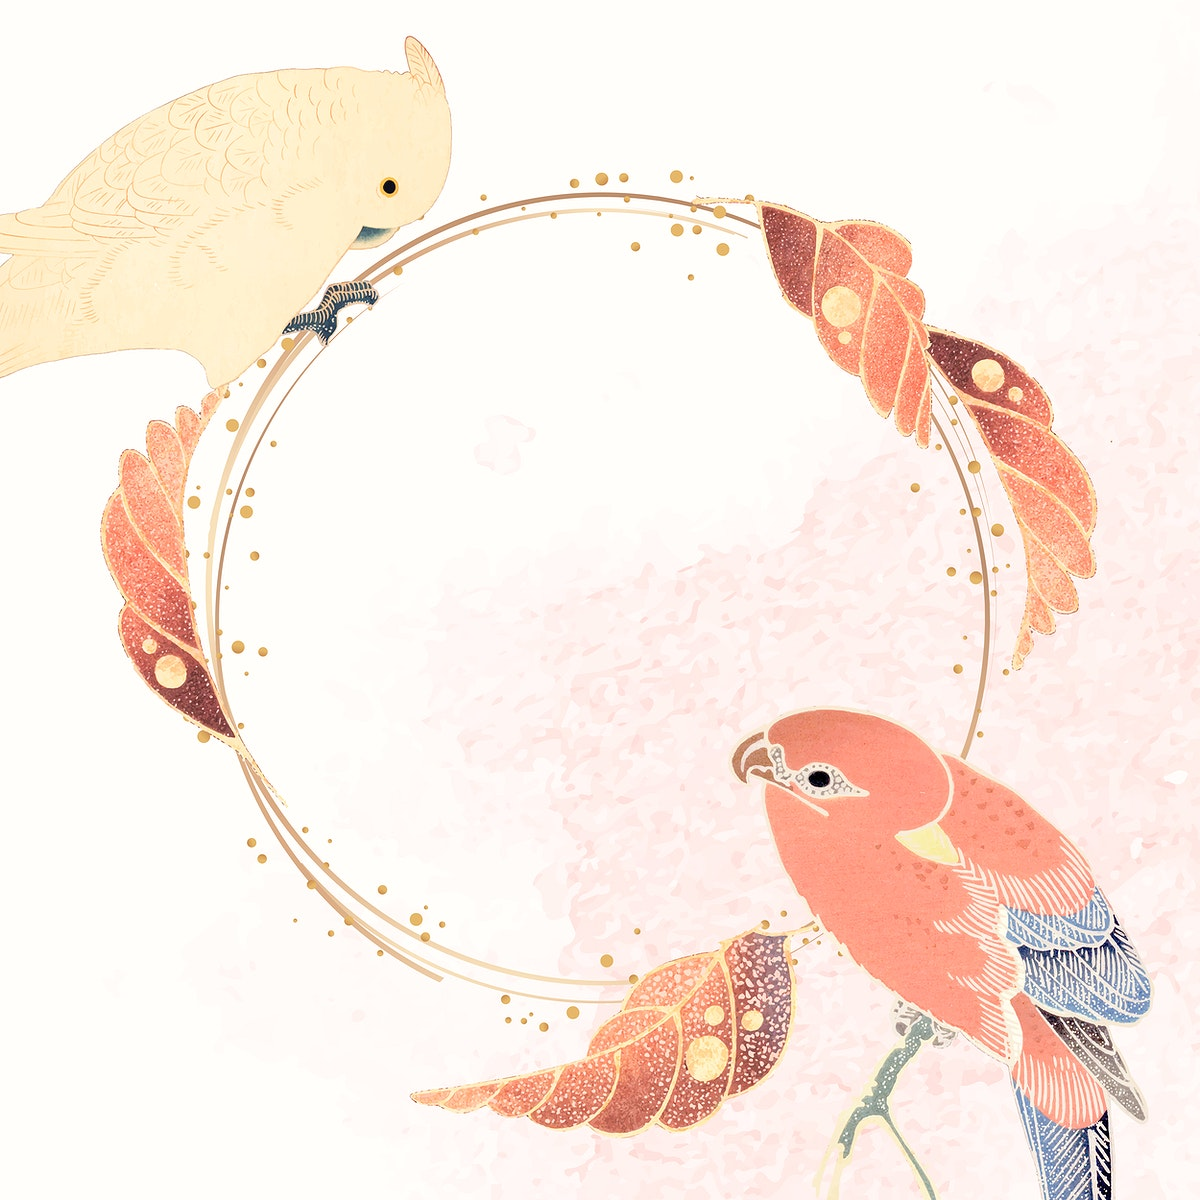 Gold frame with a parrot, a macaw, and leaf motifs on a white and pink background vector